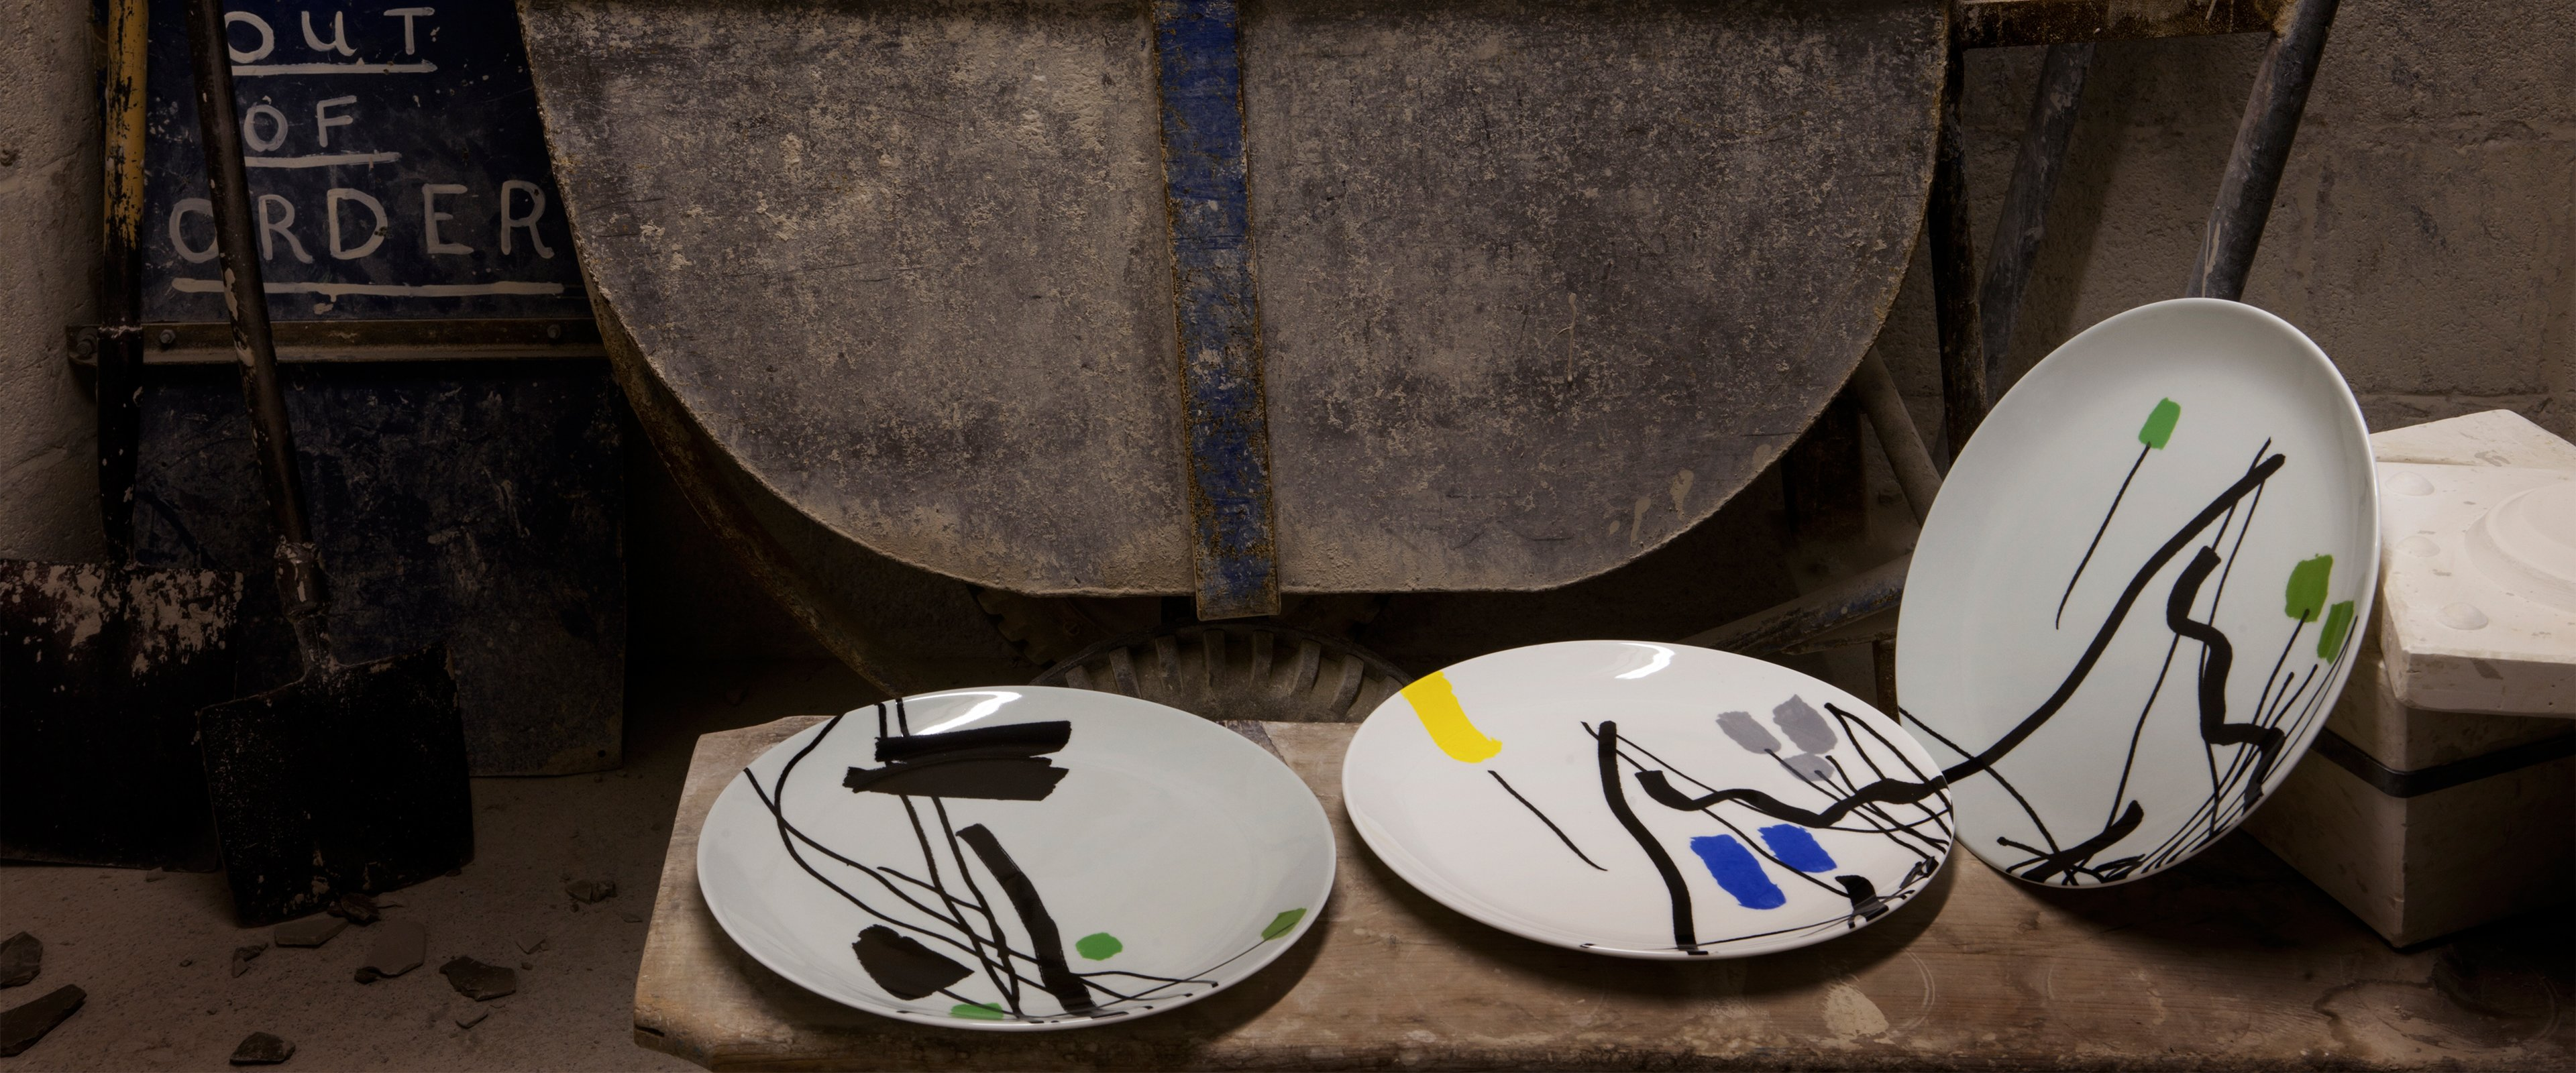 Garden Ware Table Ware Collection with Bruce McLean | 1882 Ltd.